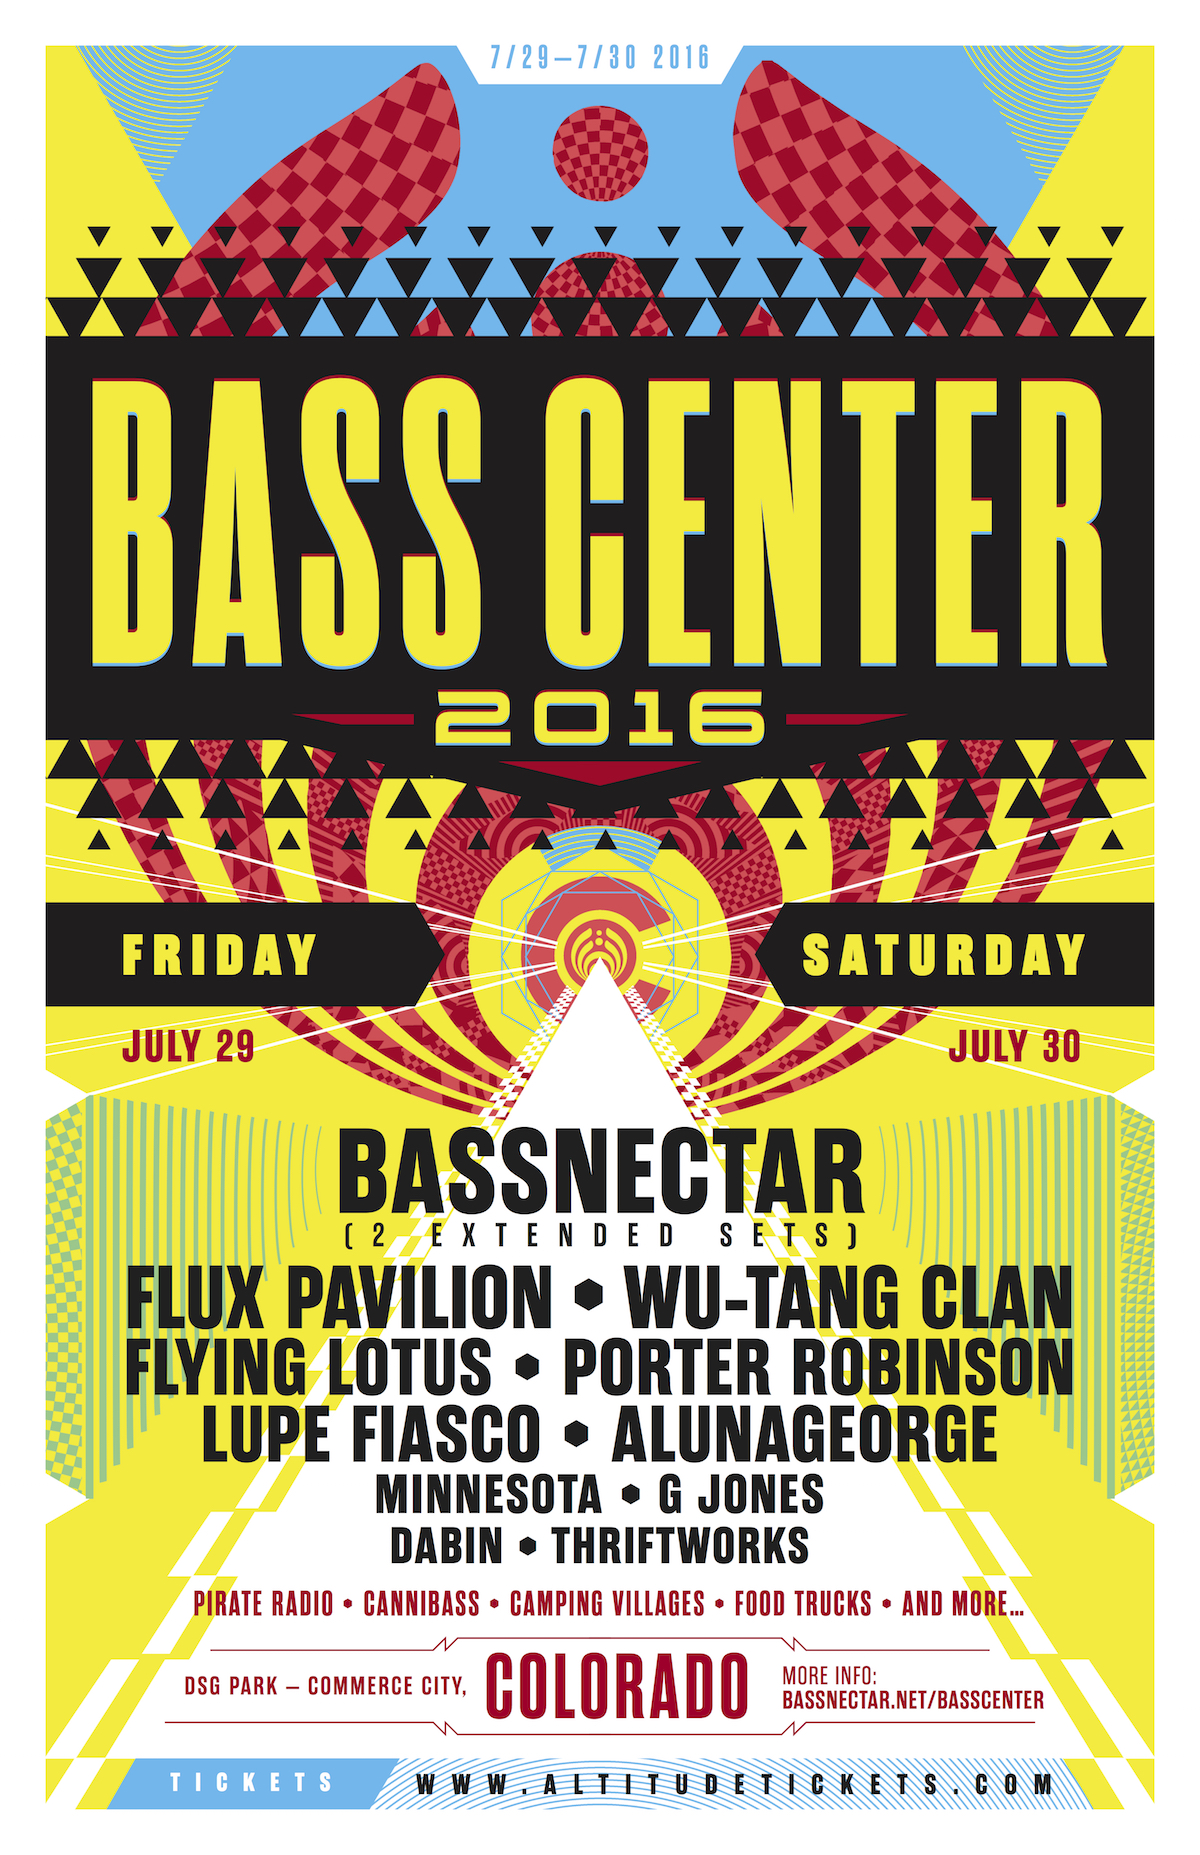 Bassnectar presents Bass Center 2016 - Colorado